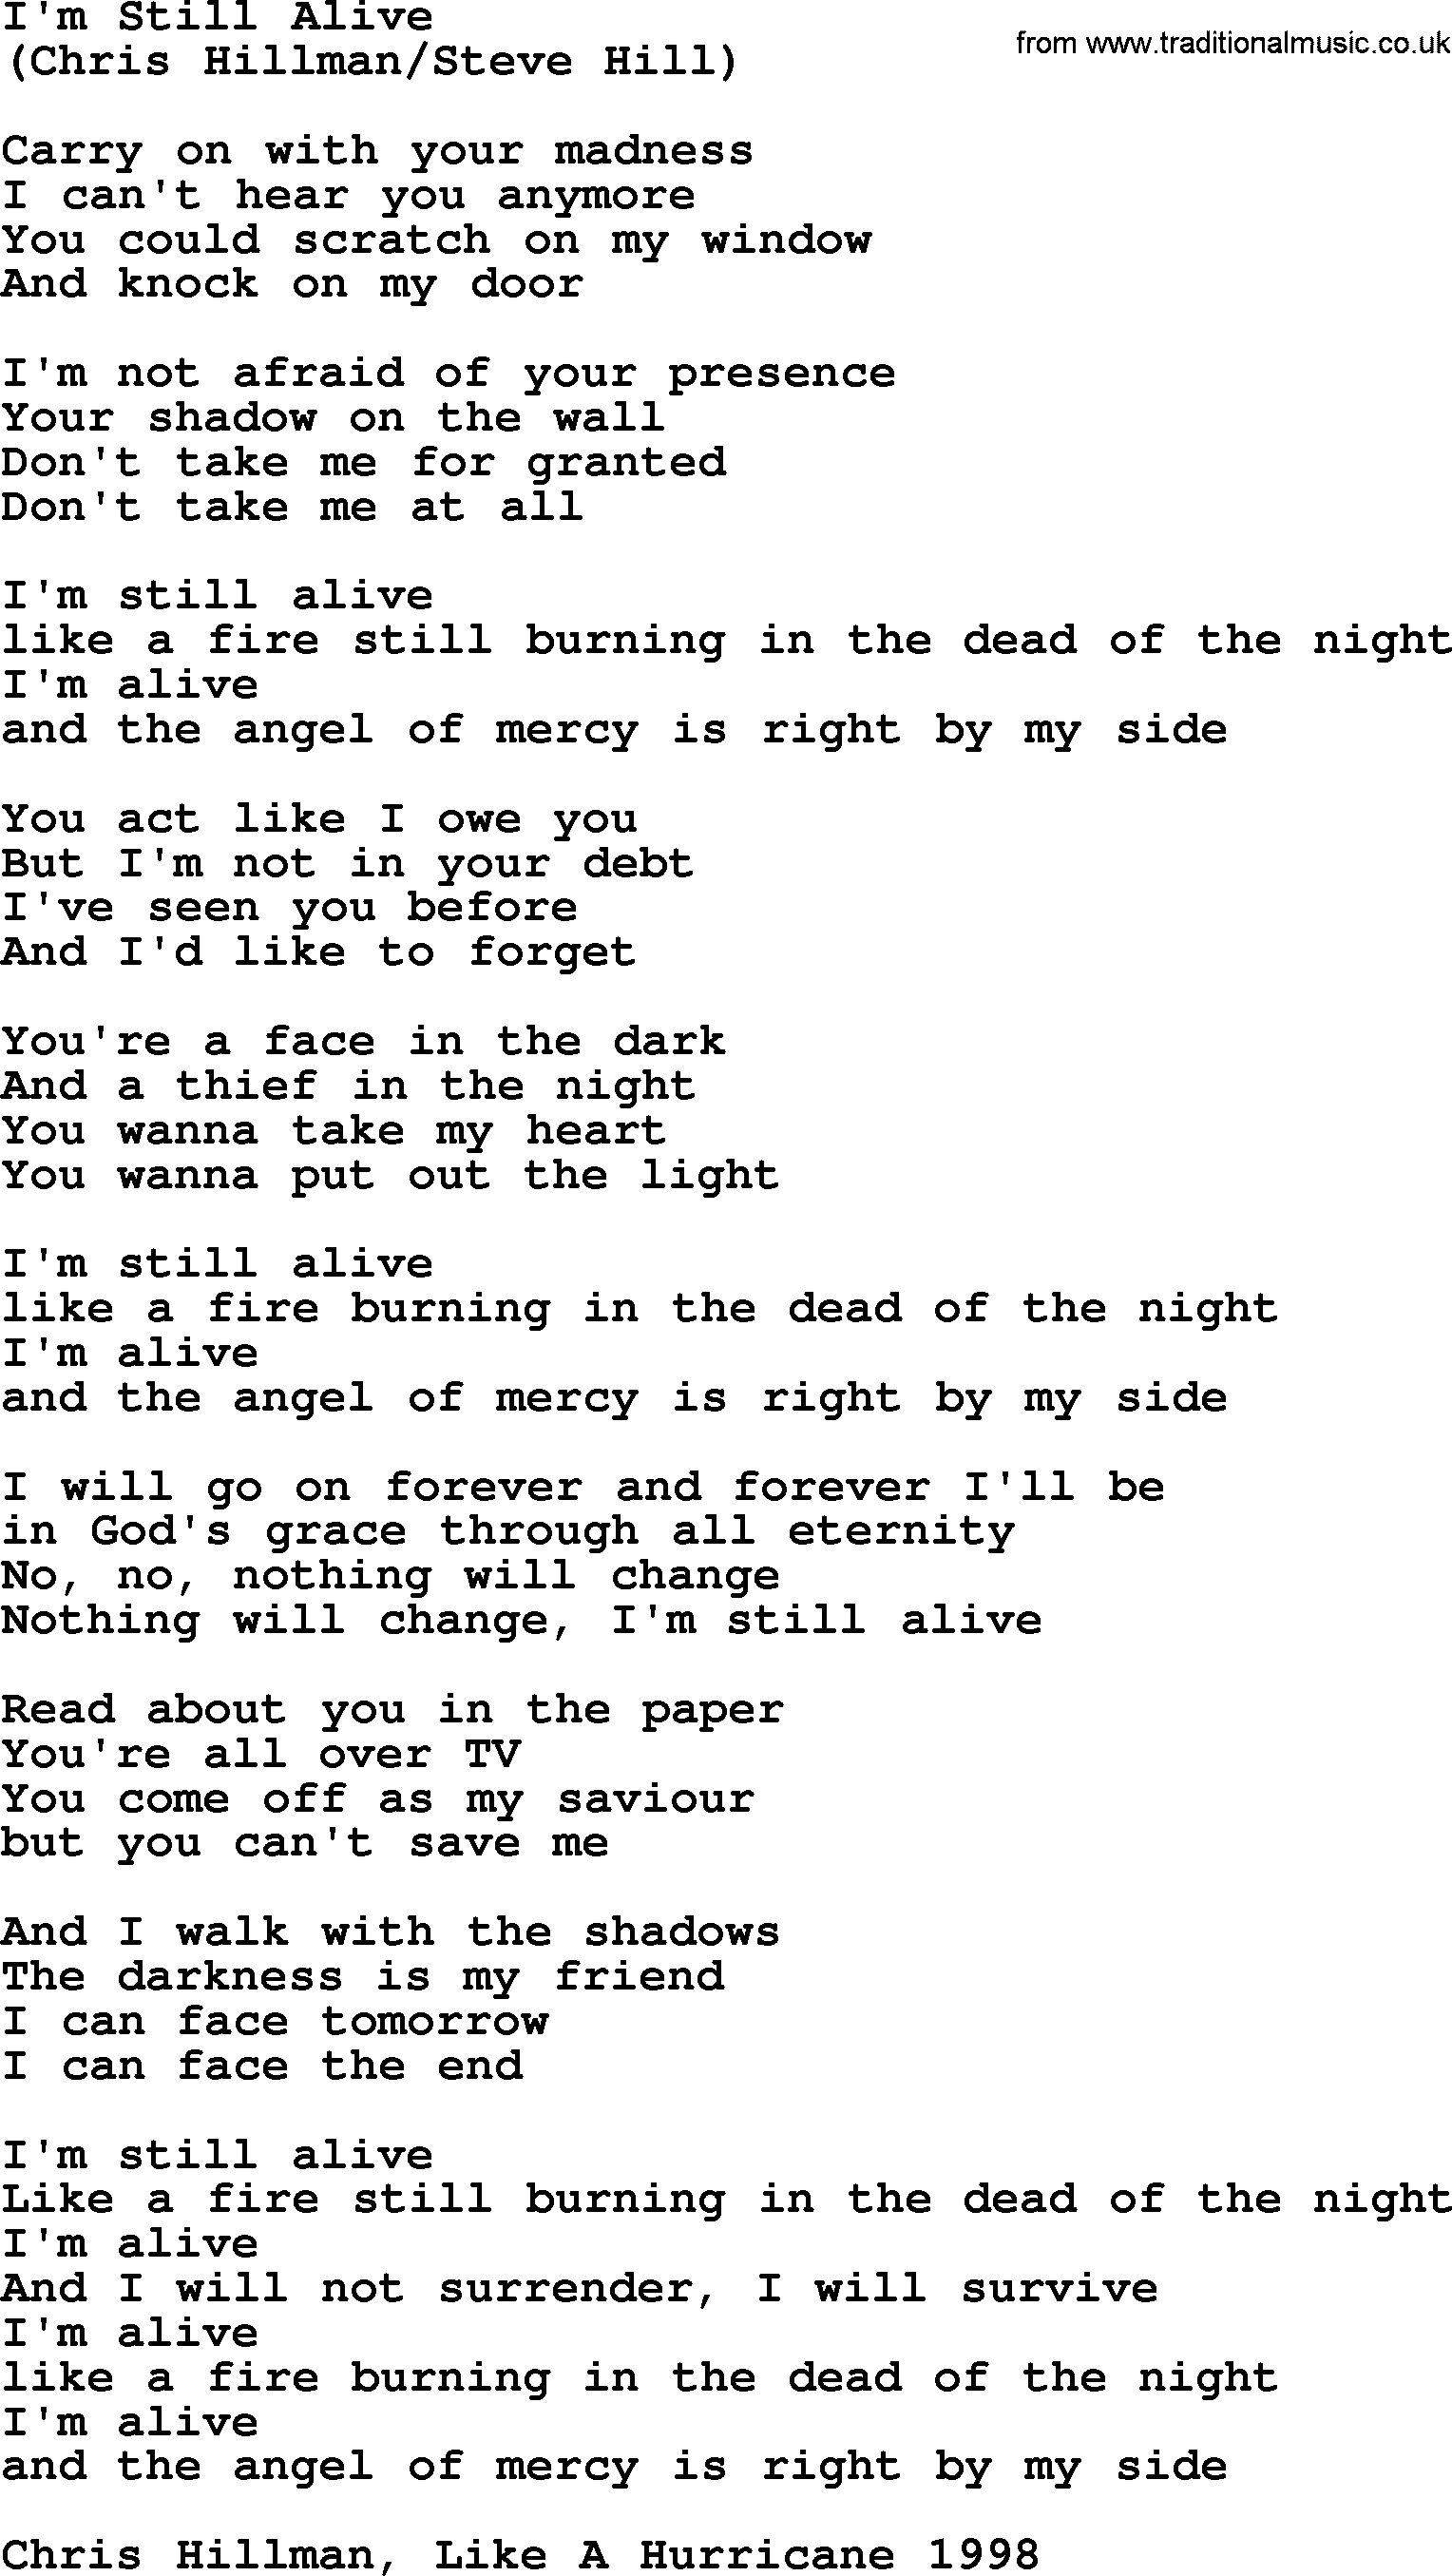 I'm Still Alive, by The Byrds - lyrics with pdf